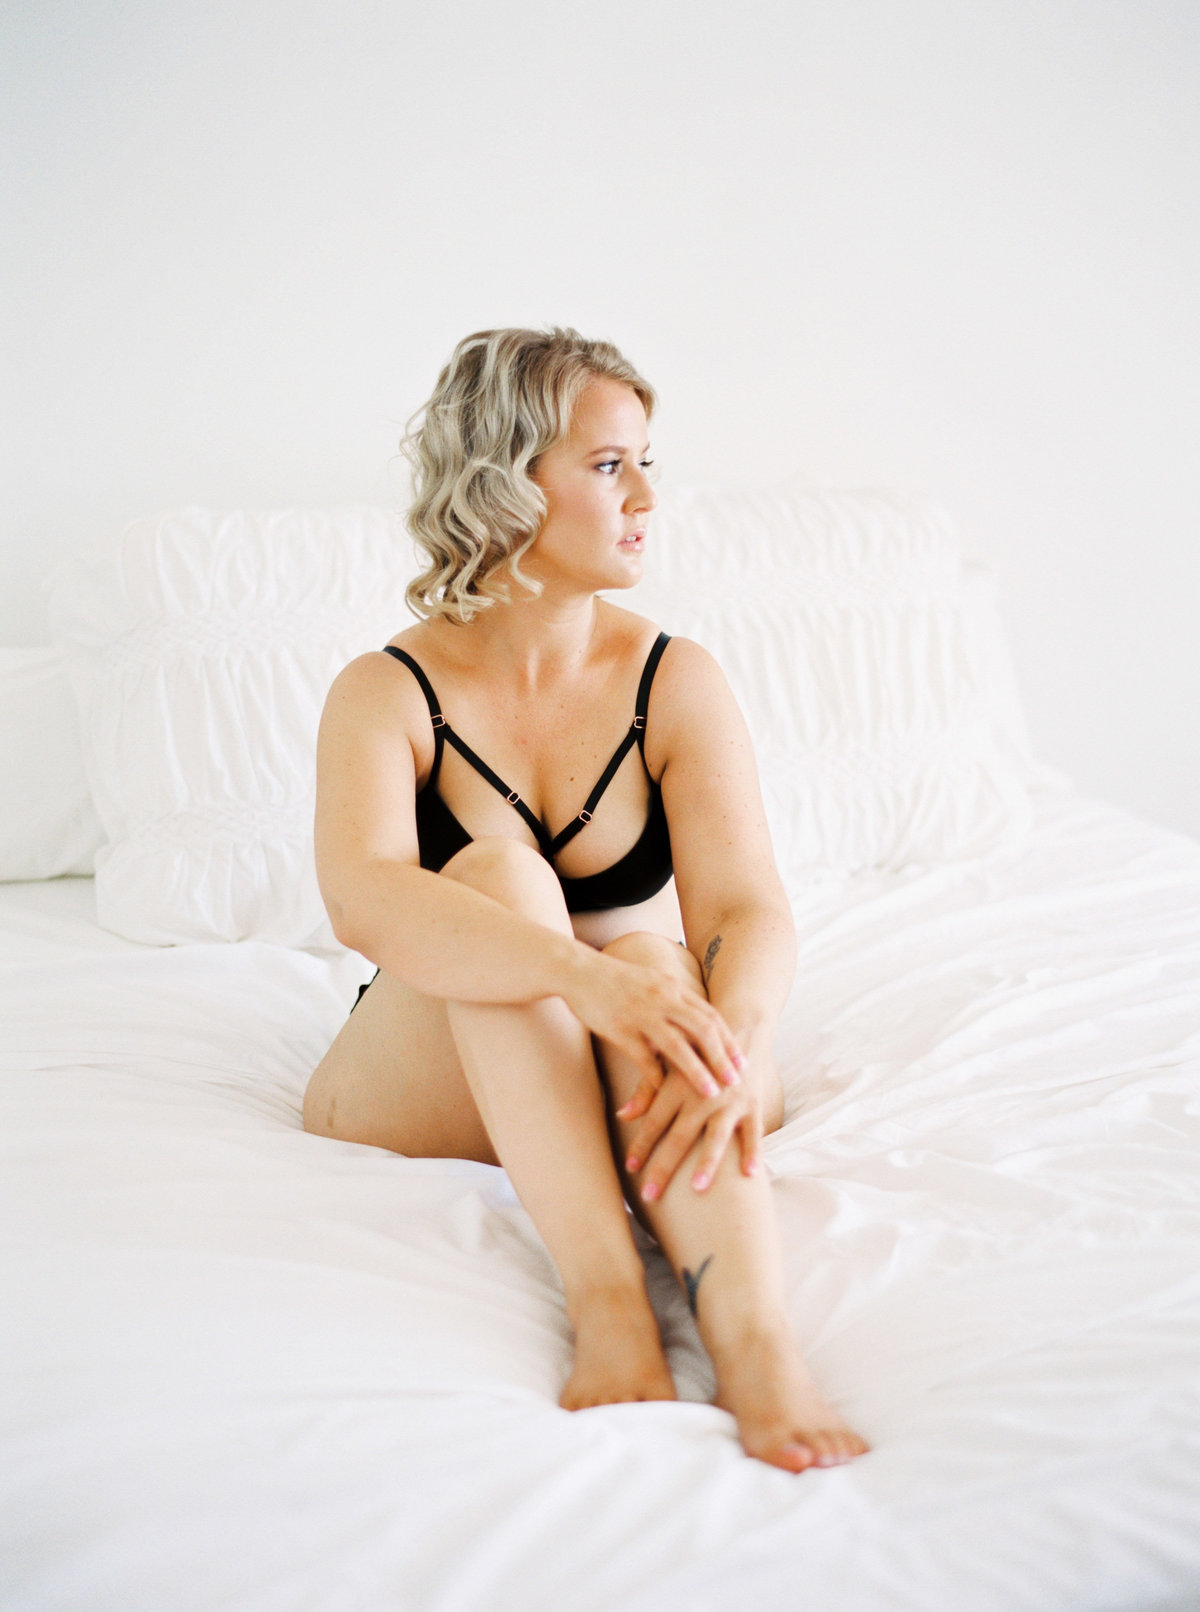 00006- Fine Art Film NSW Dubbo Mudgee Orange Bridal Boudoir Wedding Photographer Sheri McMahon